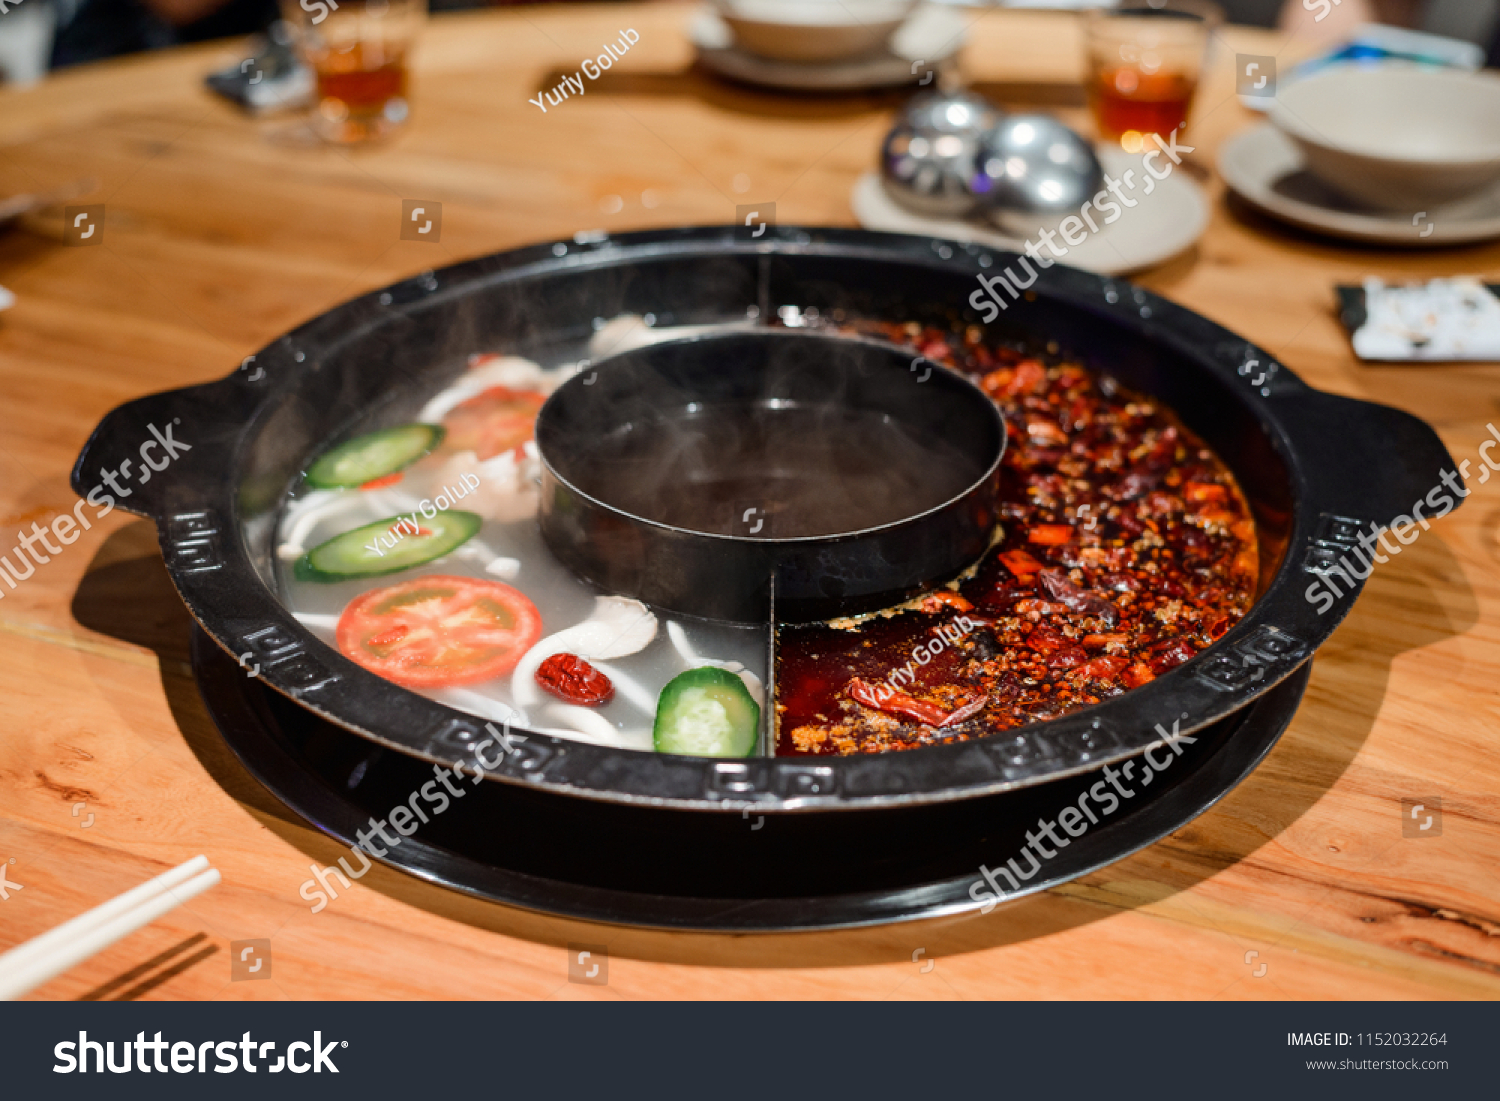 Chinese hot pot with two broth flavors - spicy and mild. Traditional Asian  food and